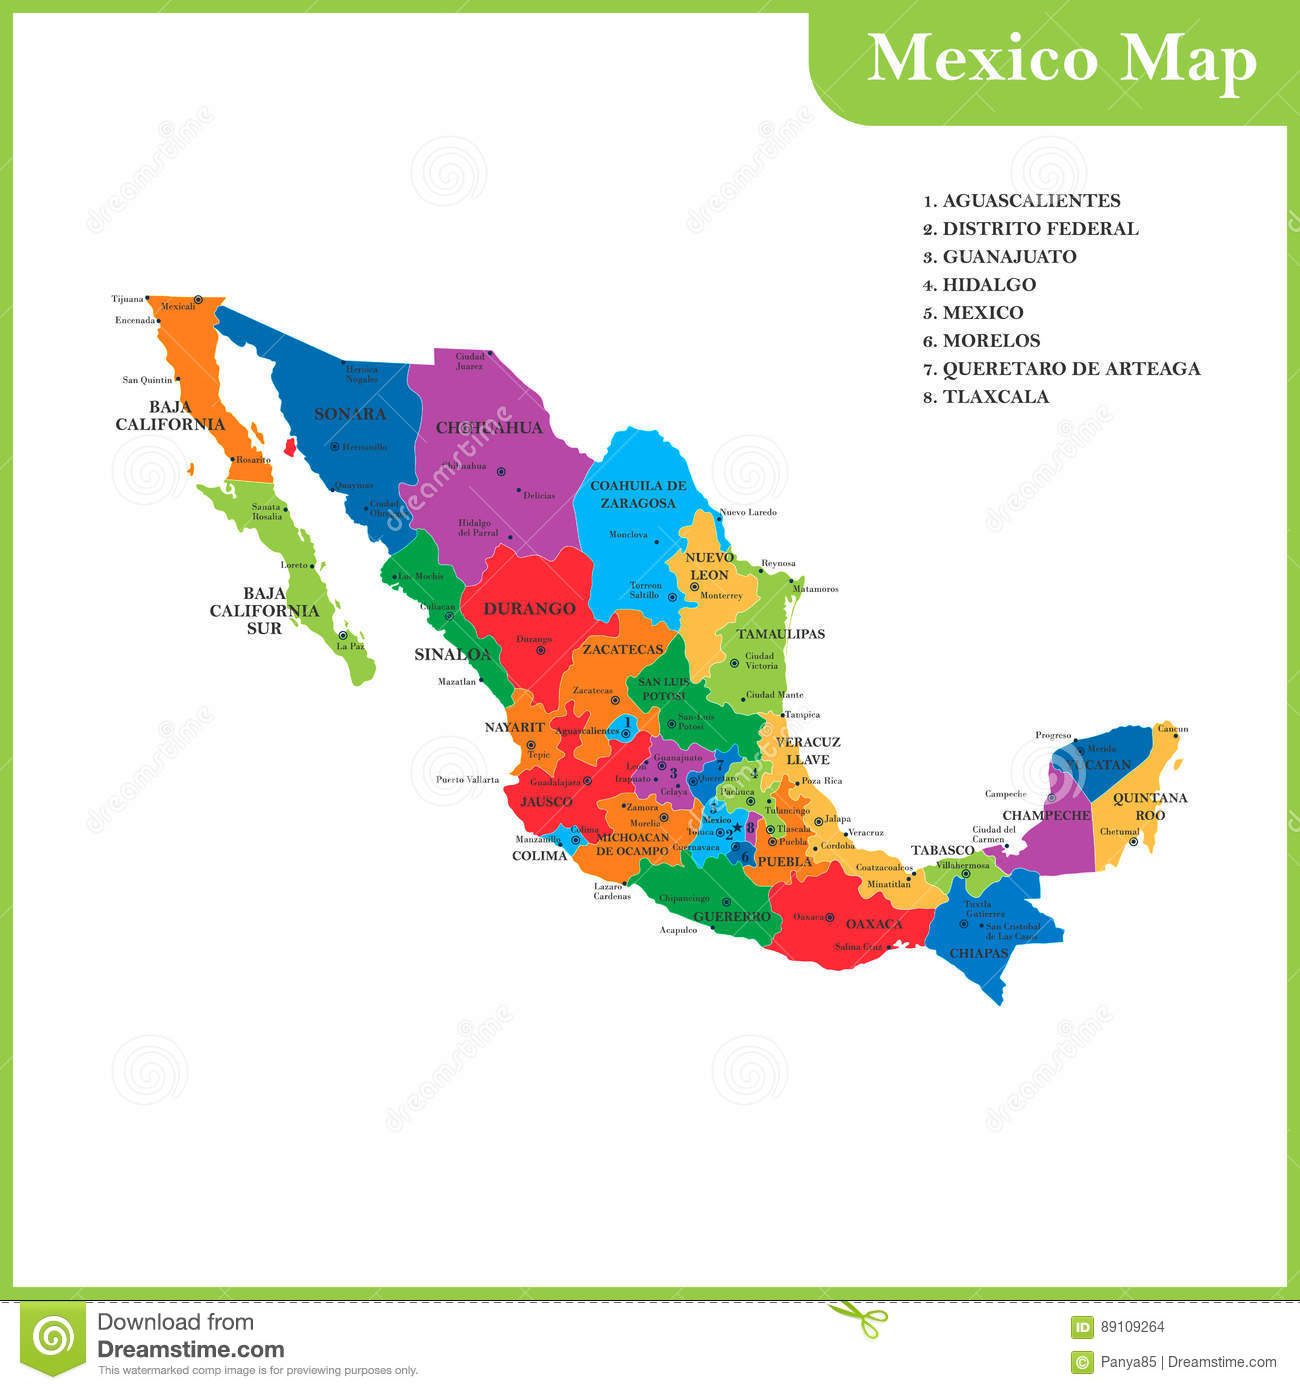 Central America And Mexico Map With Capitals.The Detailed Map Of The Mexico With Regions Or States And Cities